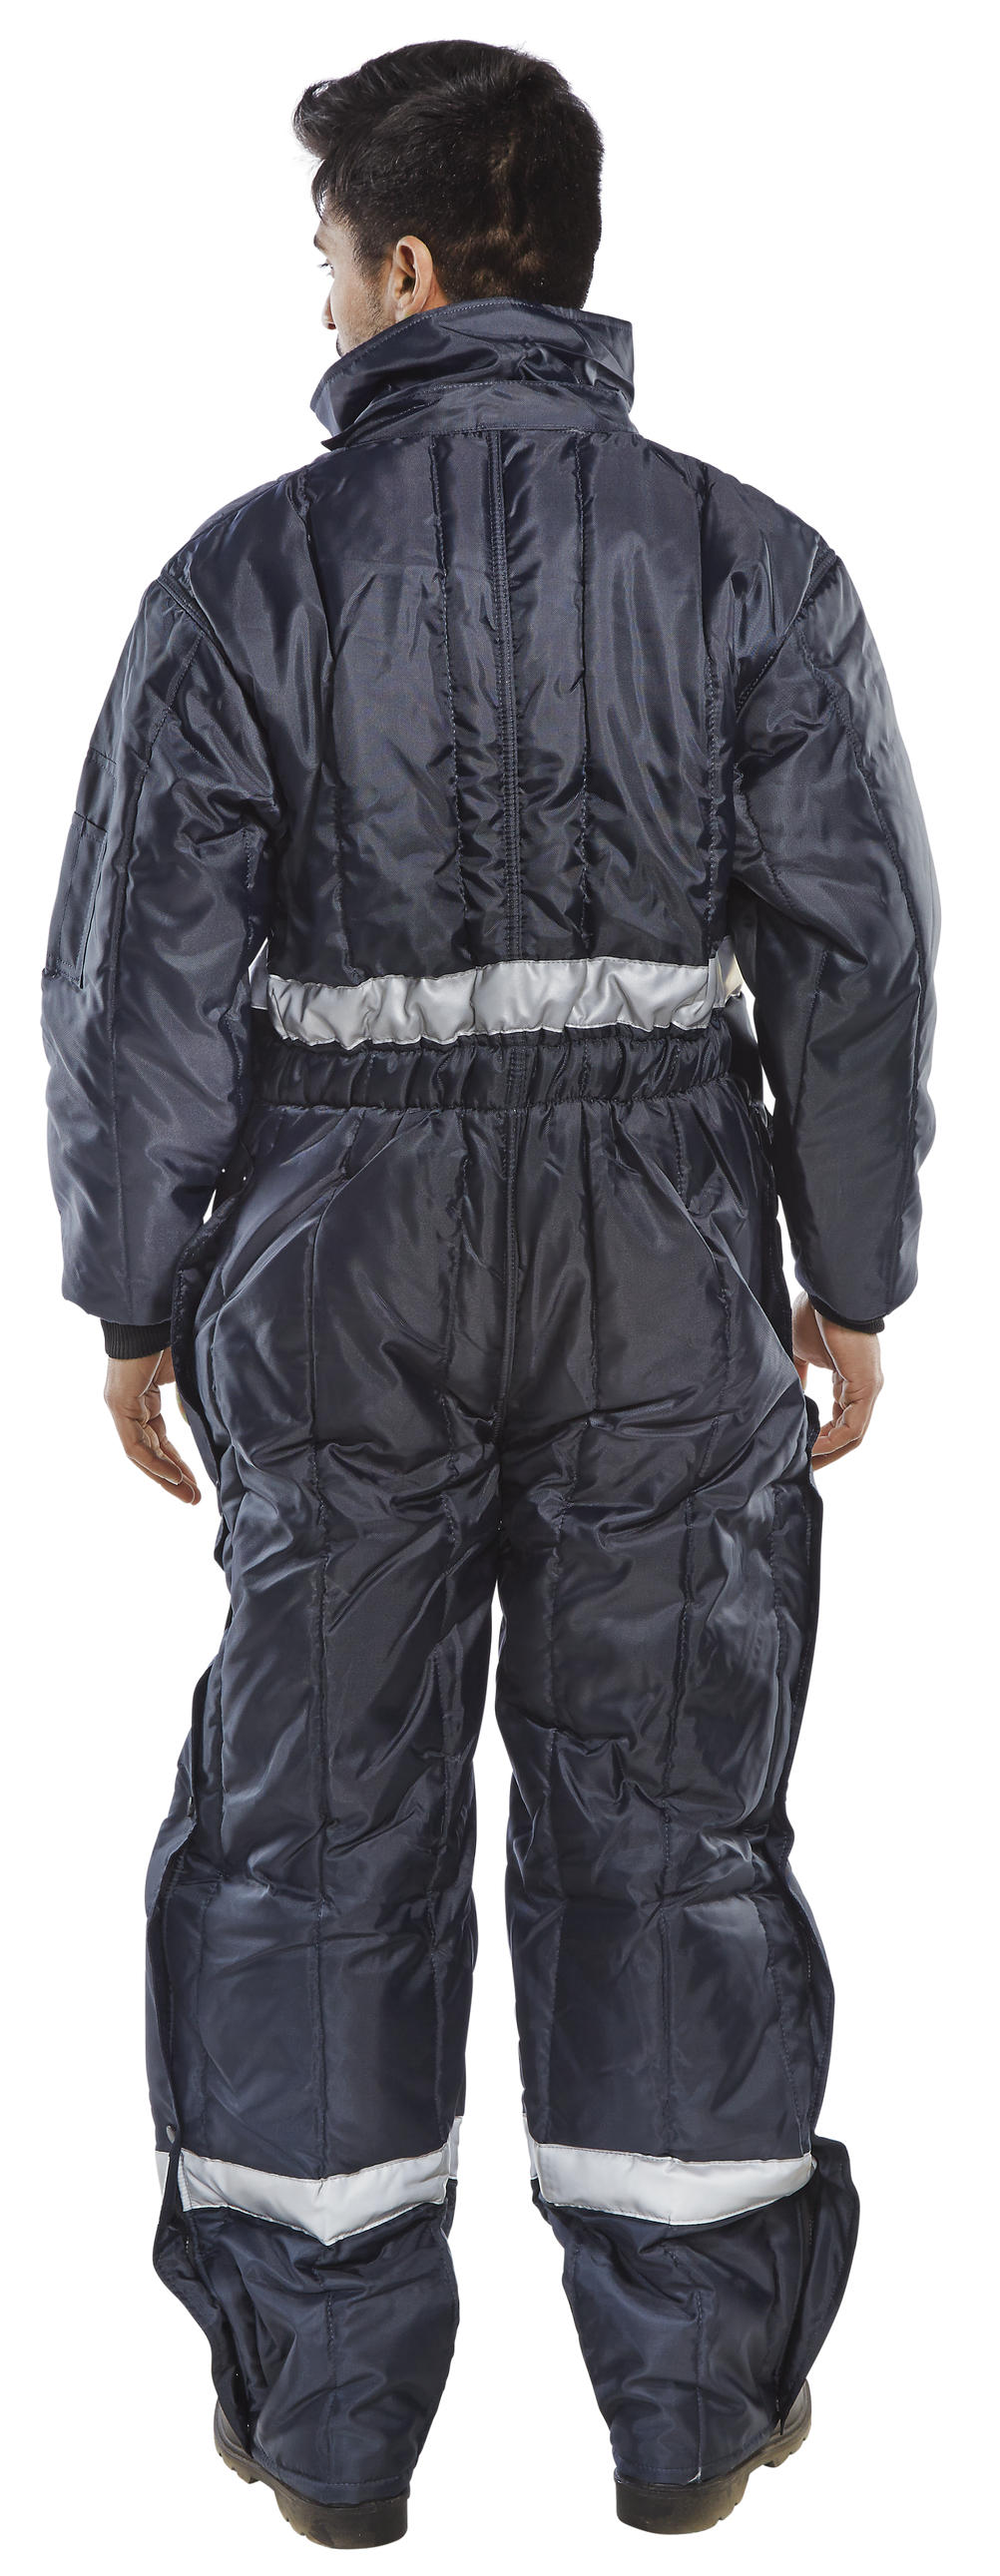 COLDSTAR FREEZER COVERALL - CCFC